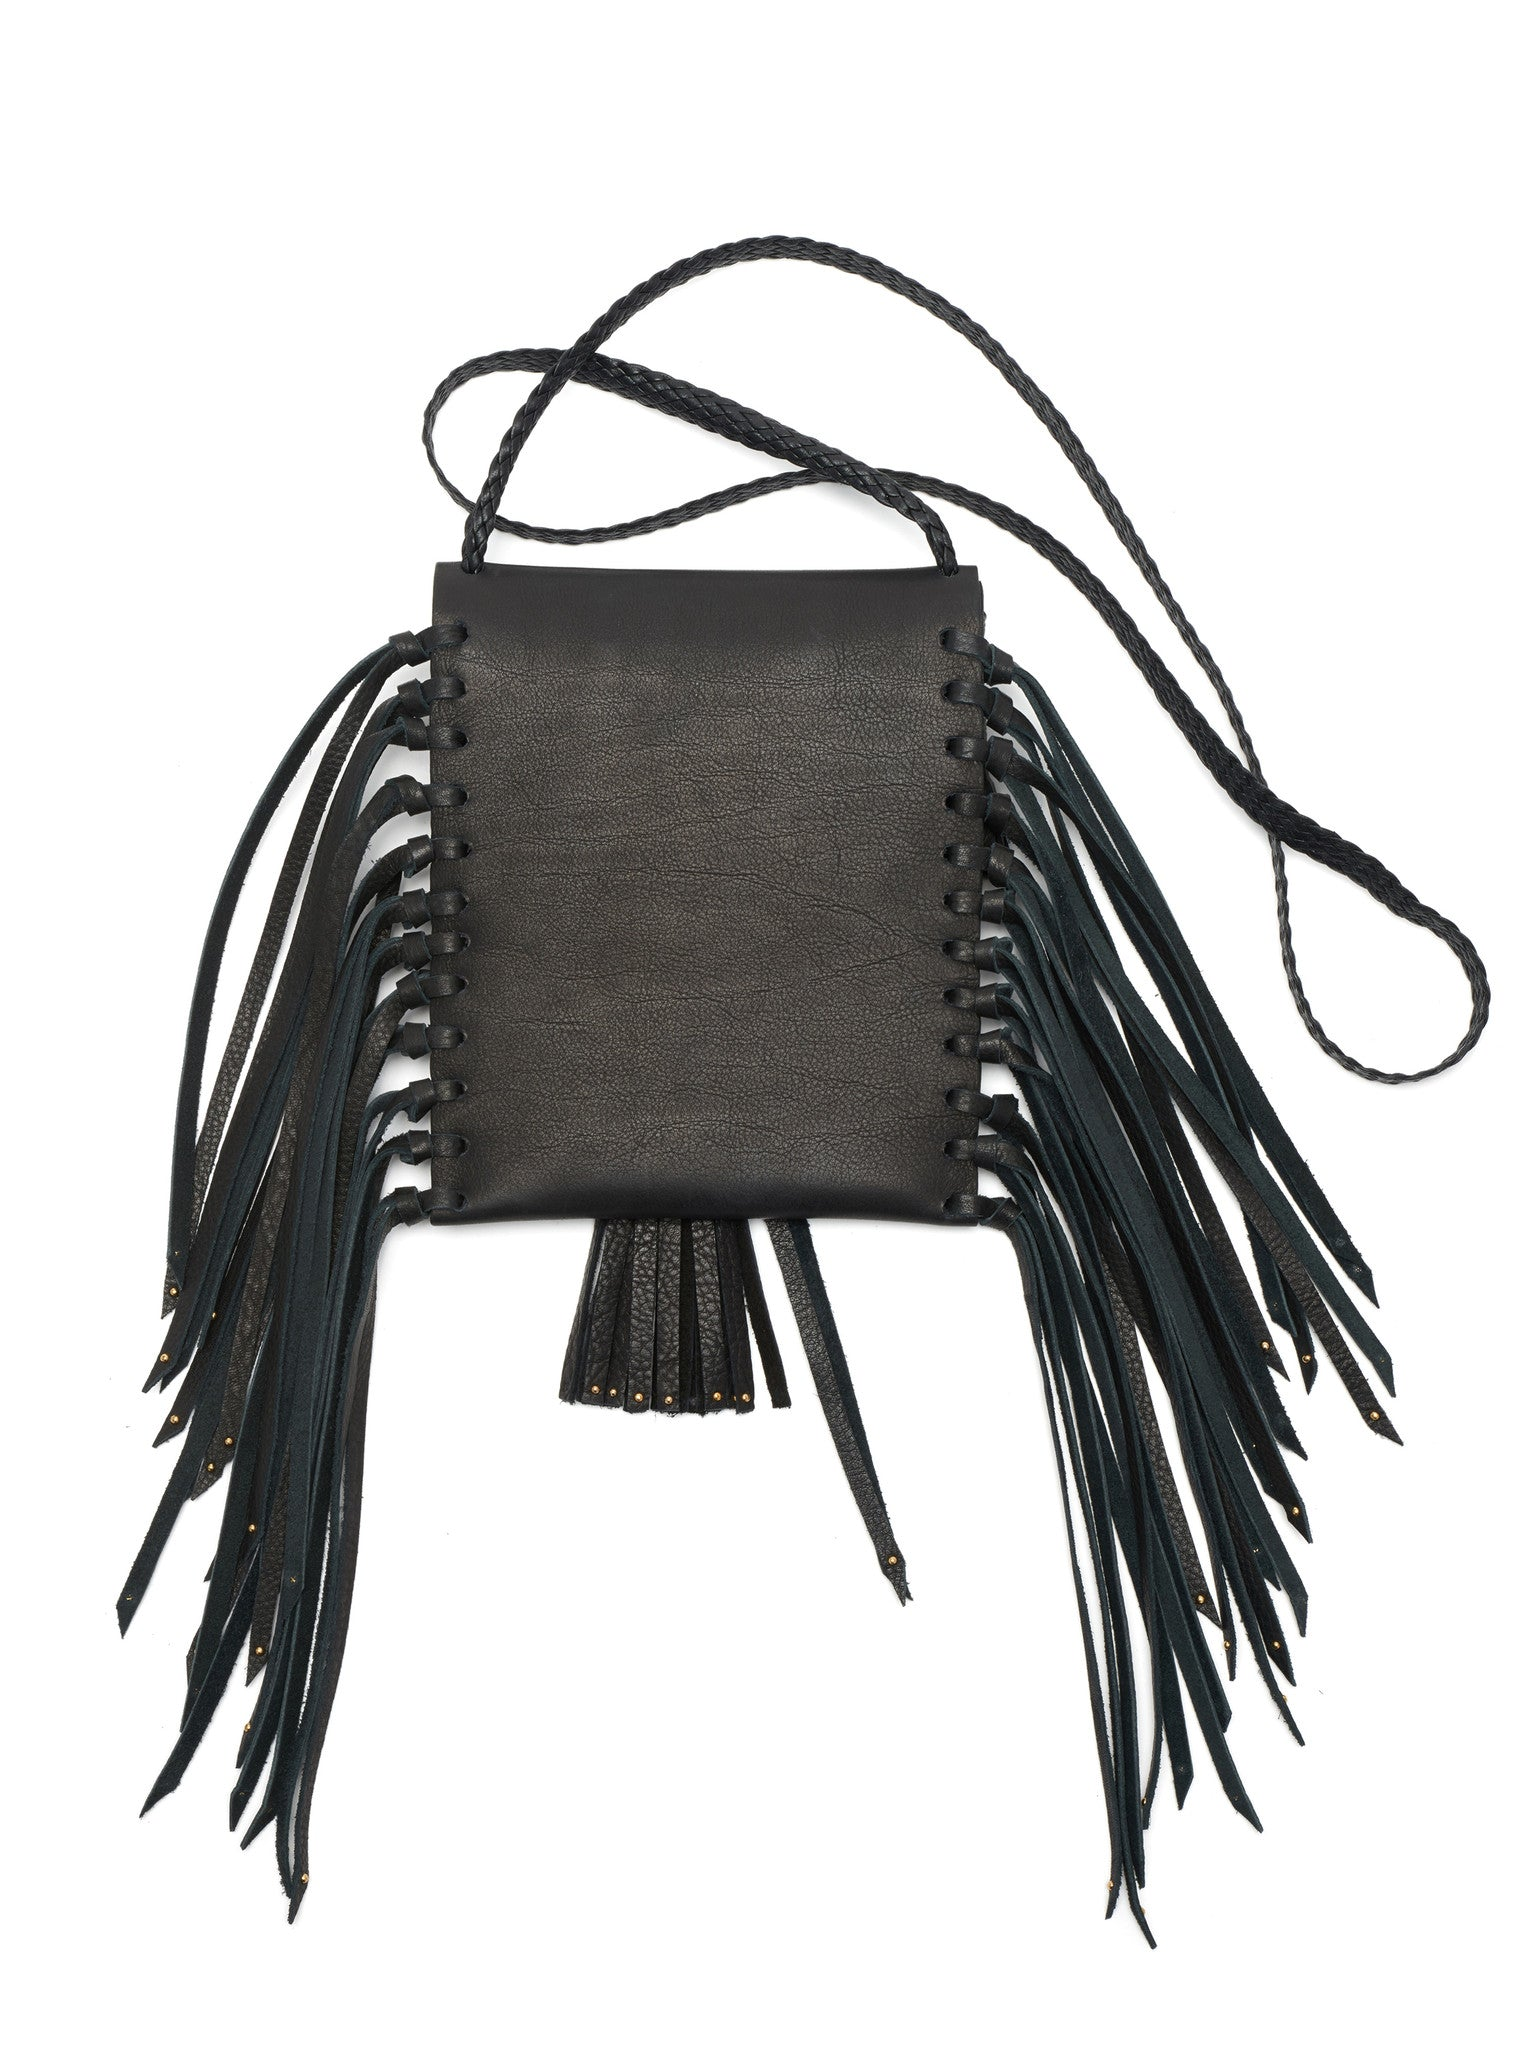 Black Studded Tobacco Bag Wendy Nichol Handbag Purse Designer Handmade in NYC Fringe Boho Cross Body Braided Strap